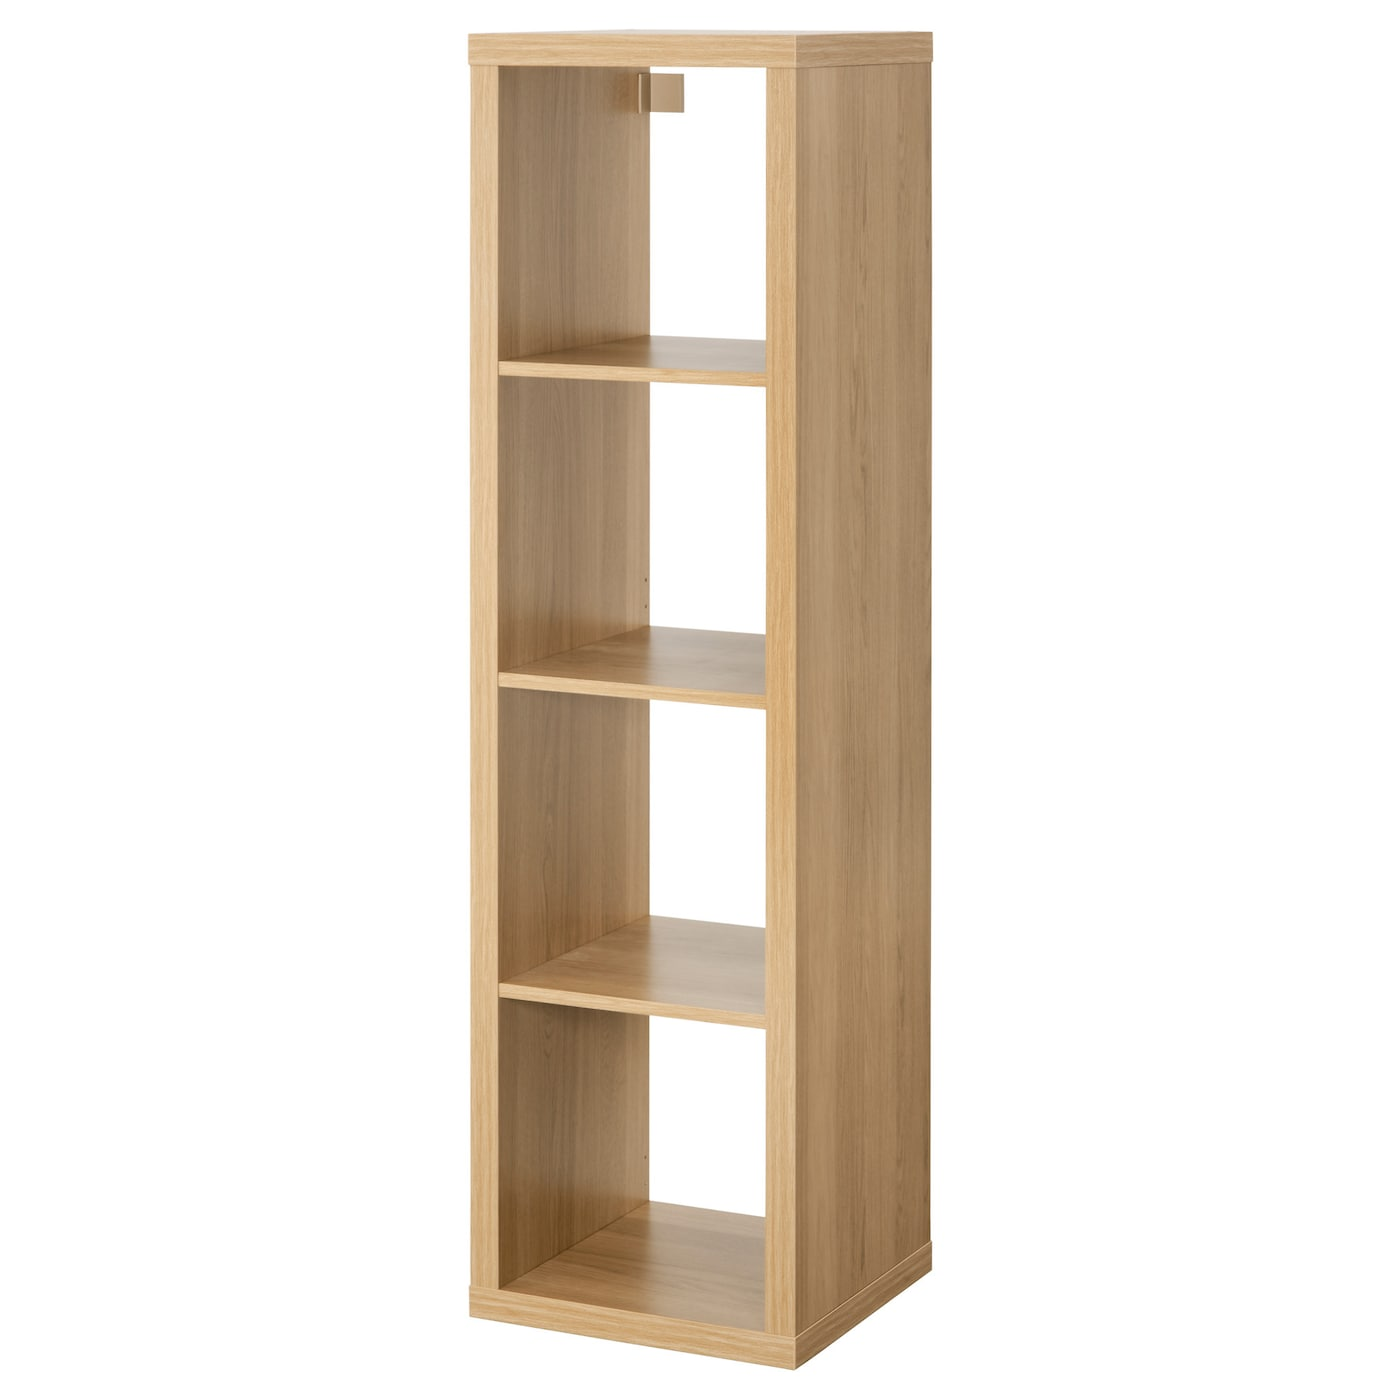 kallax shelving unit oak effect 42 x 147 cm - ikea